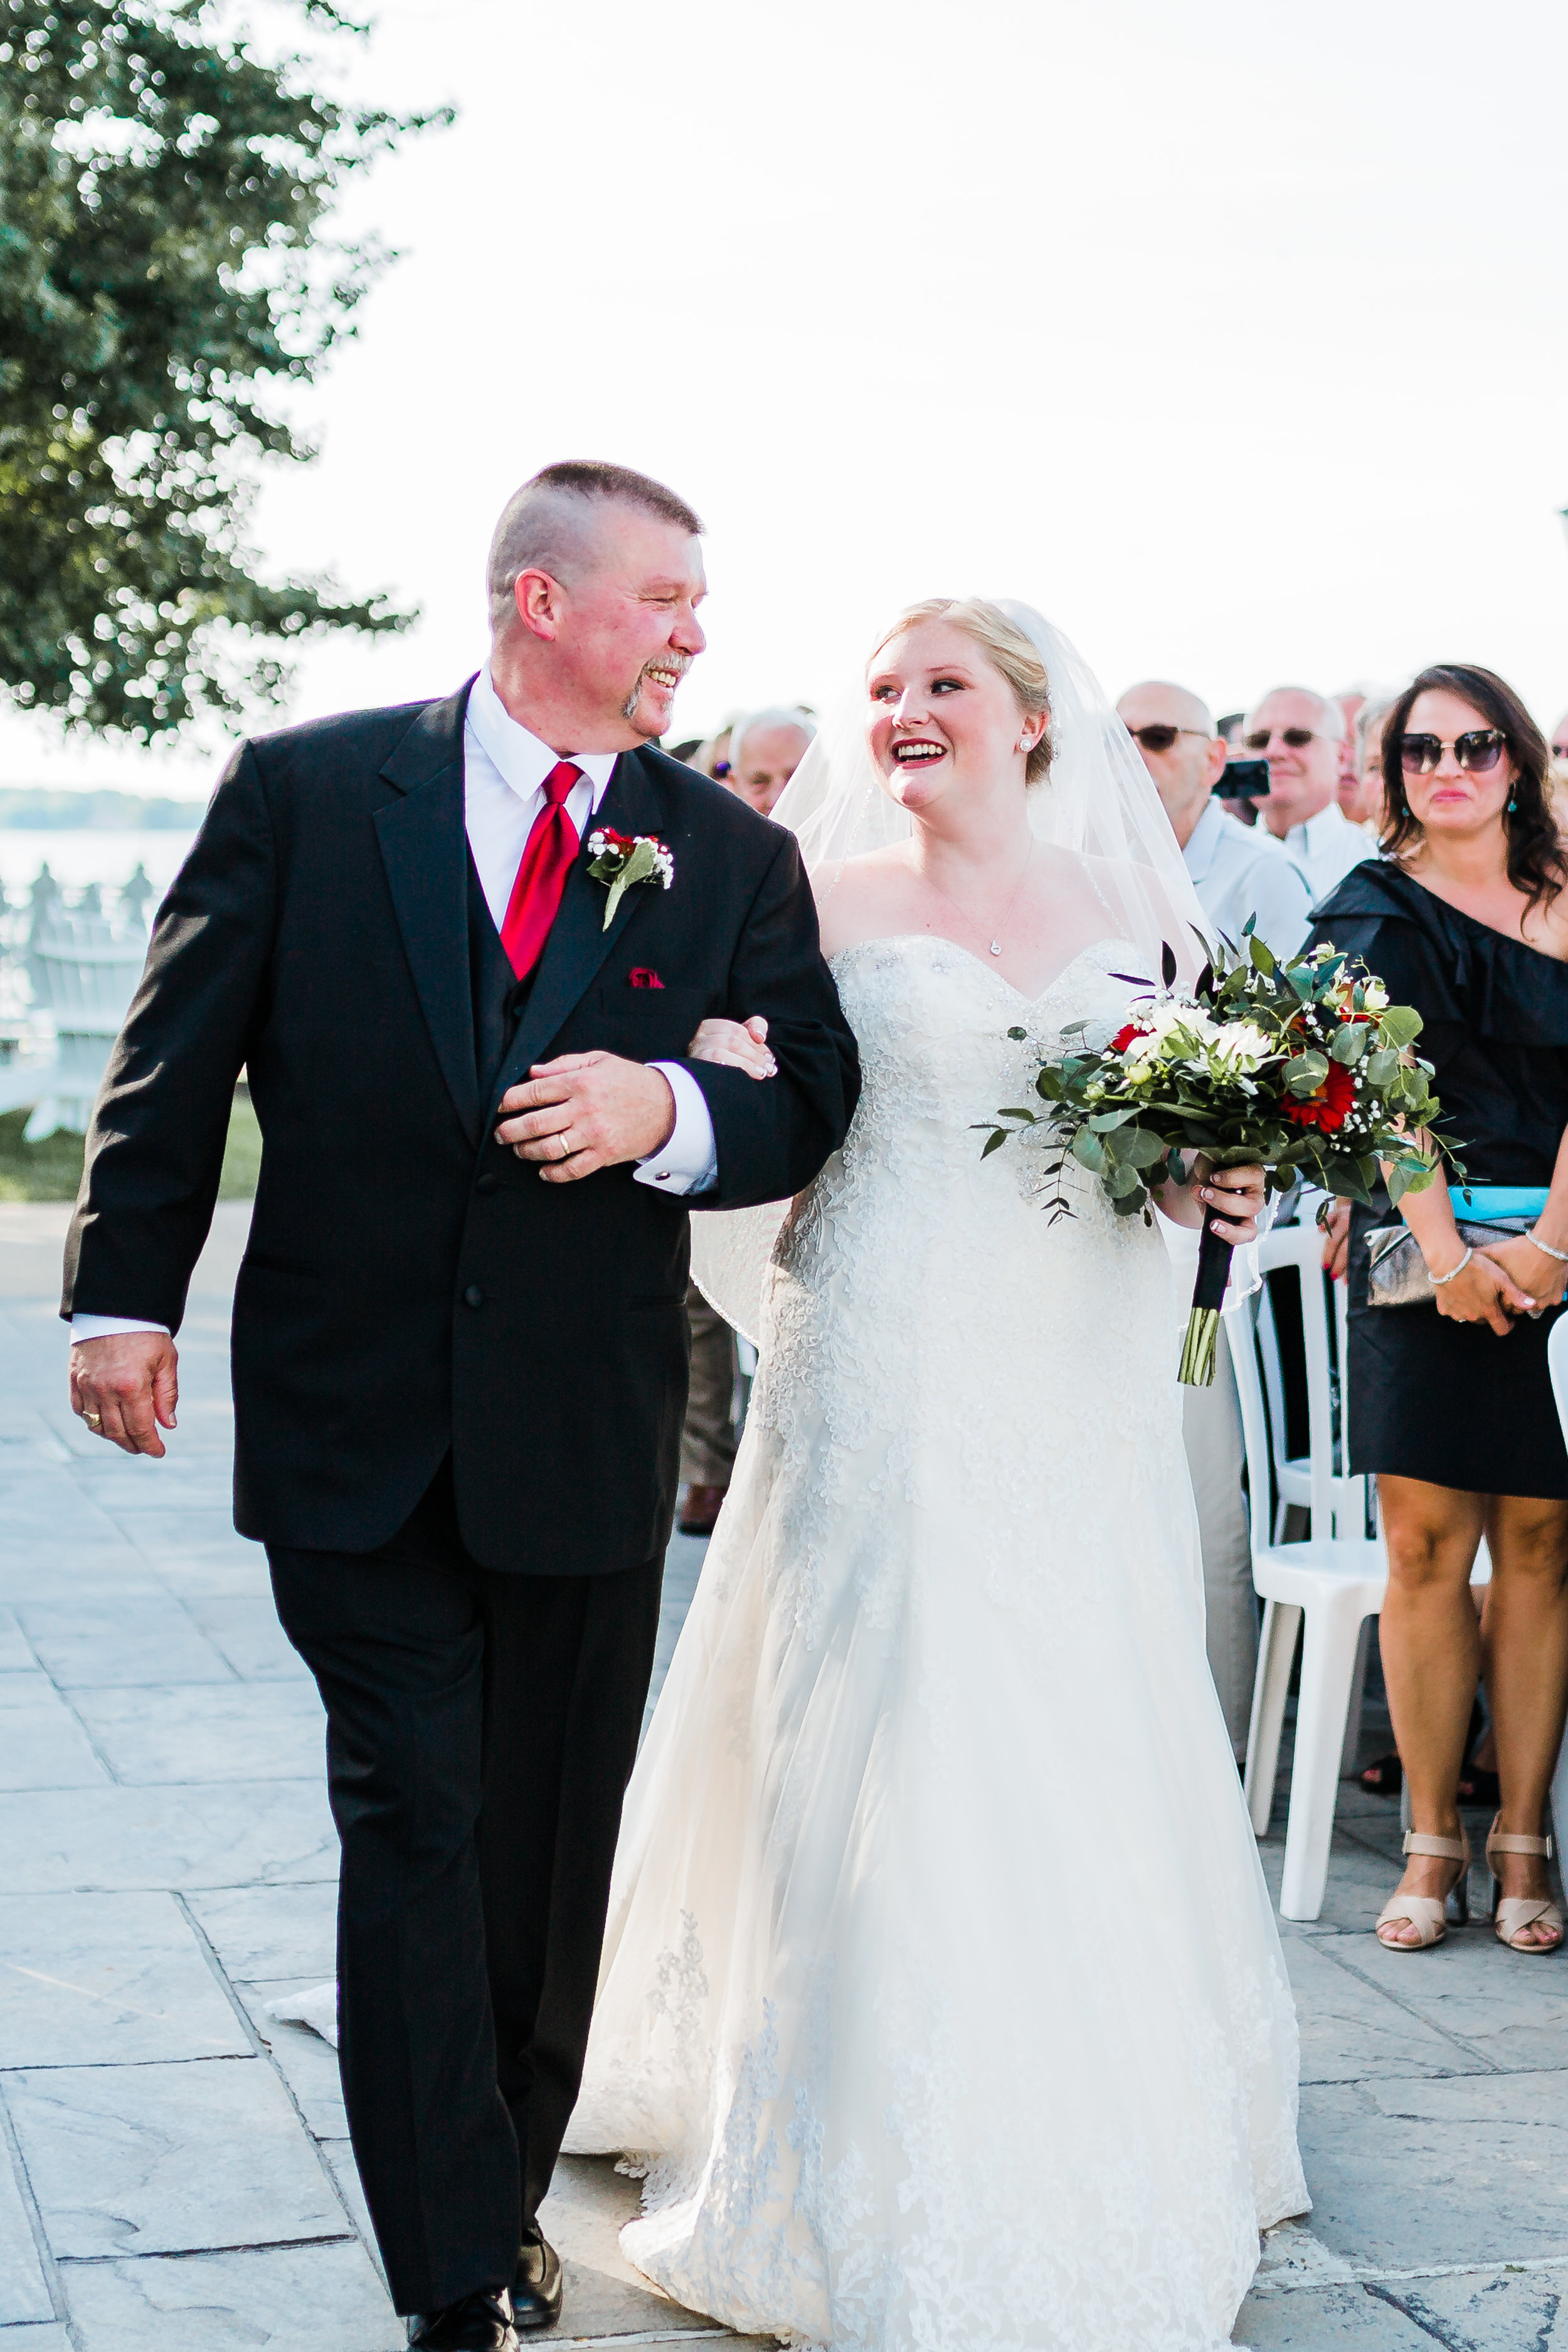 father of the bride walks his daughter down the aisle - kurtz's beach - md bayside wedding venues - best maryland wedding photographer and video